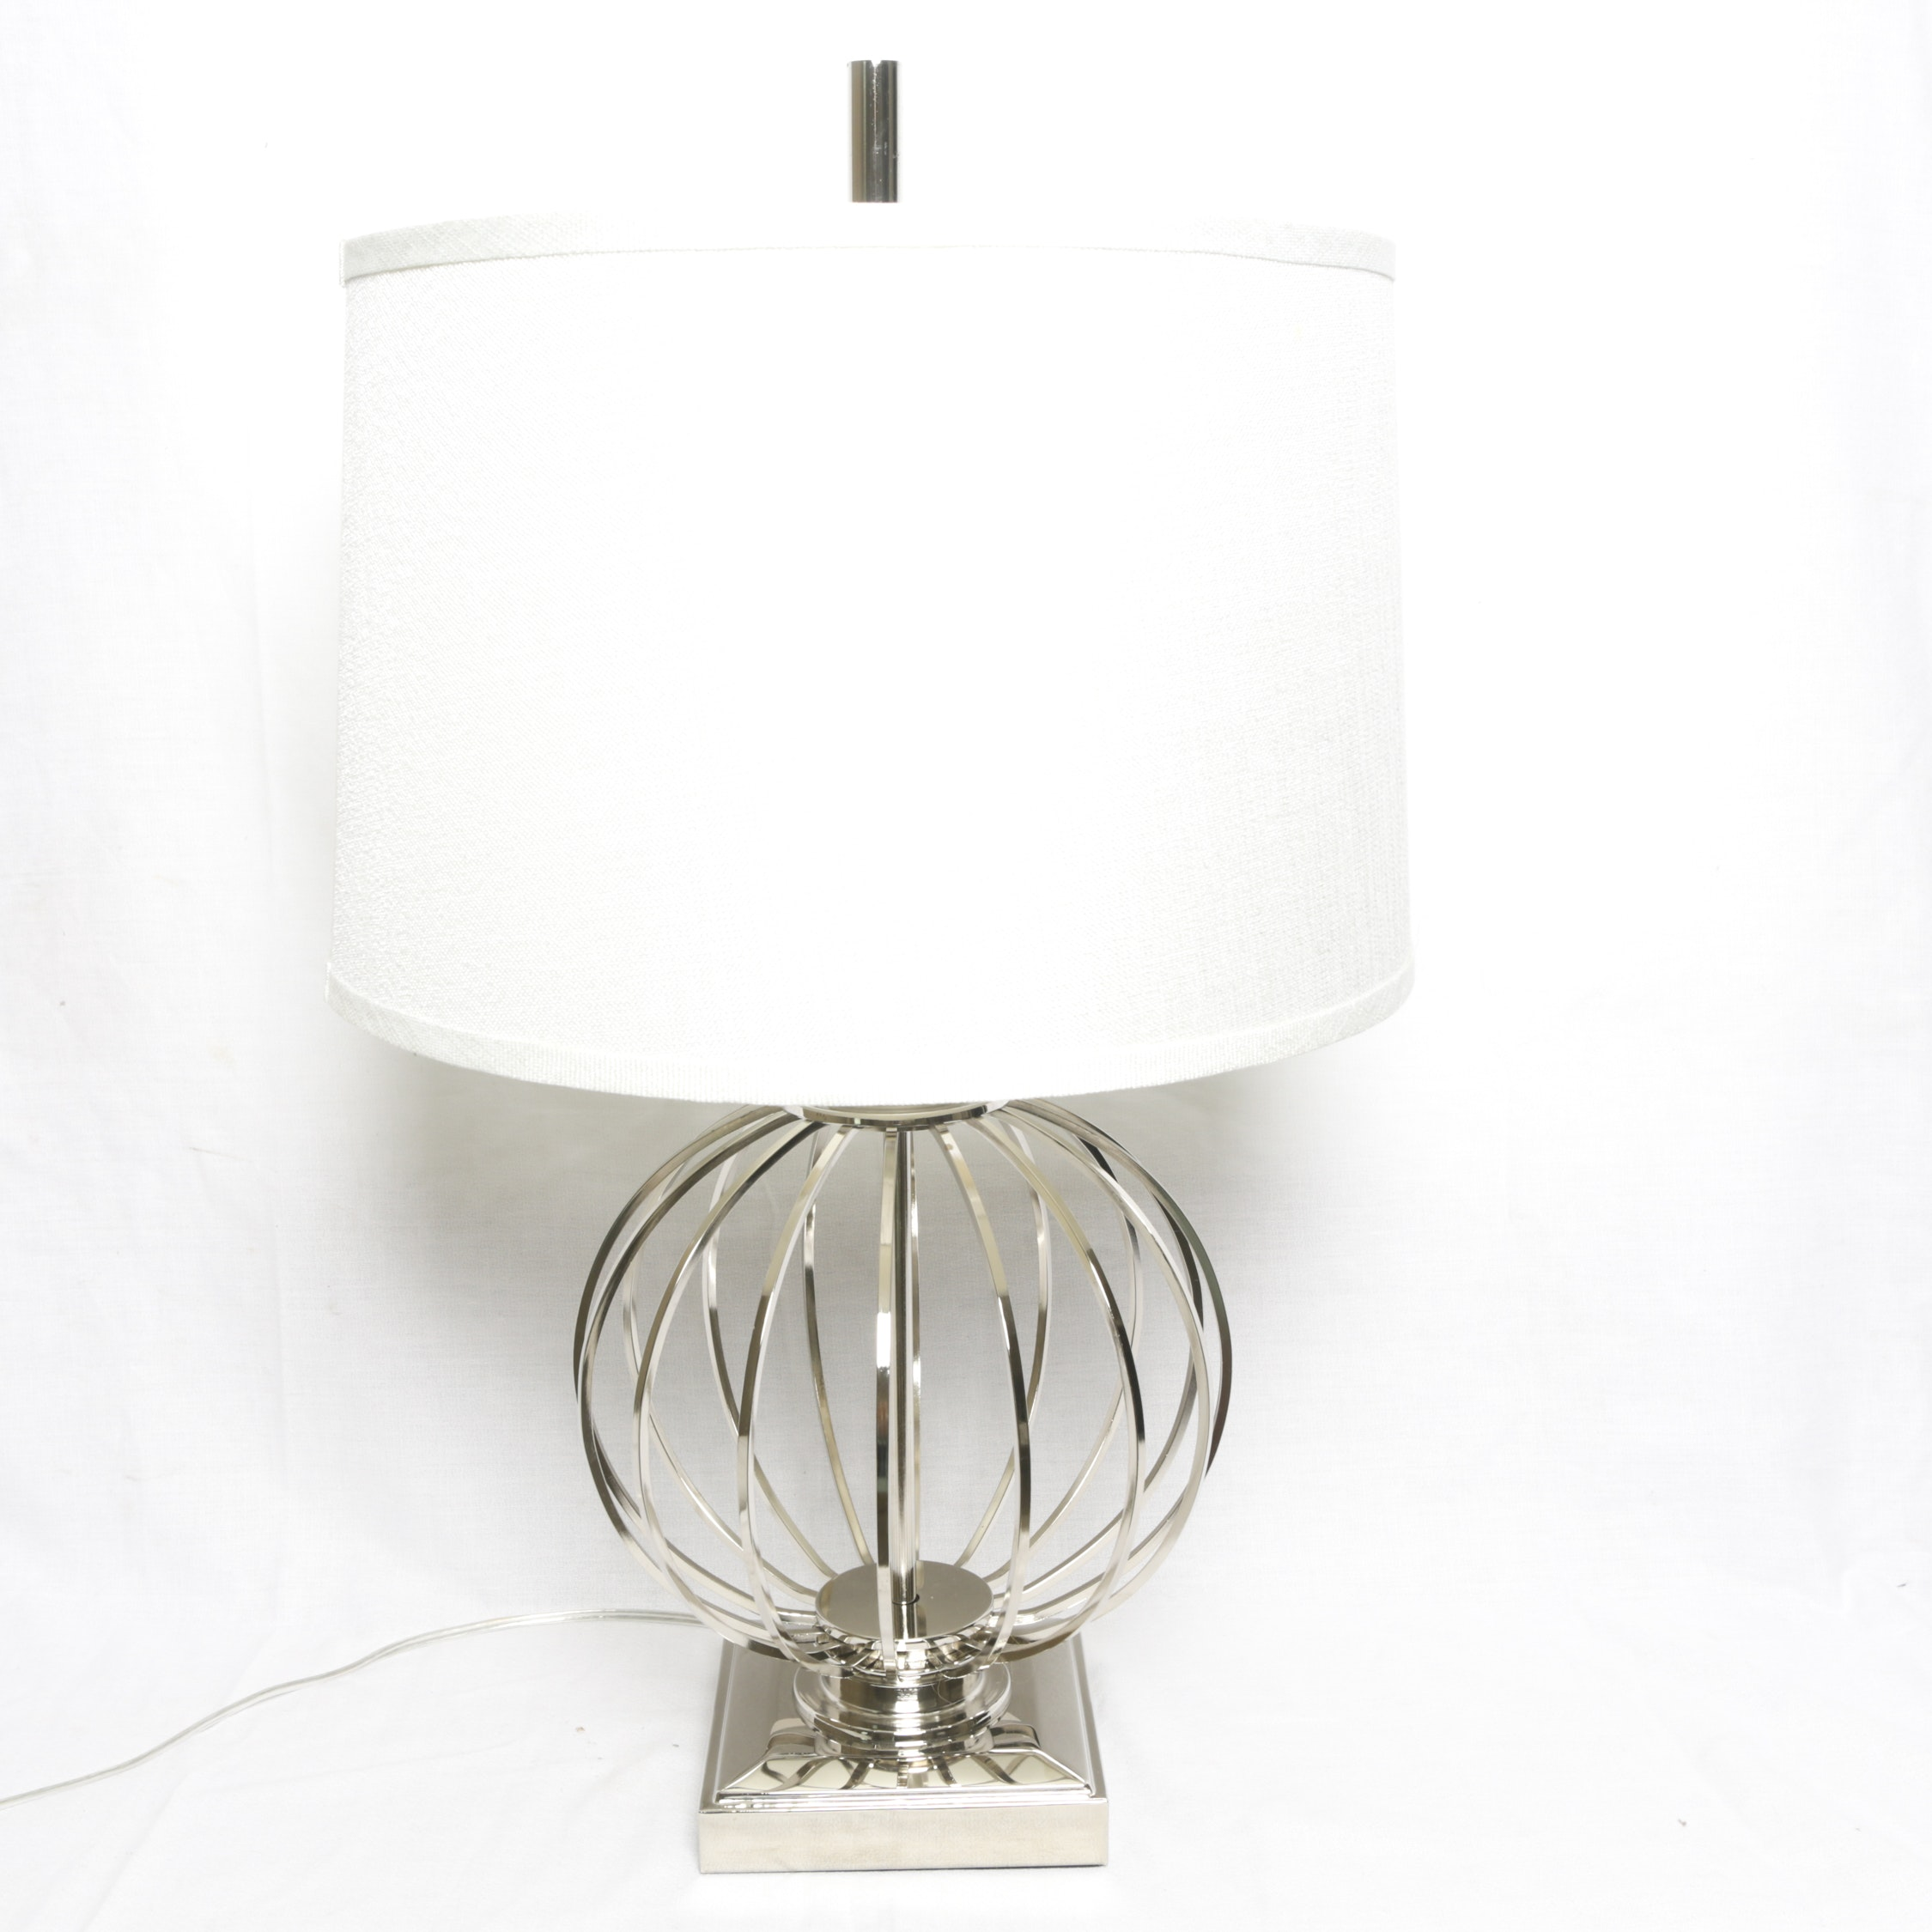 Silver Tone Metal Caged Ball Table Lamp with White Fabric Covered Drum Shade